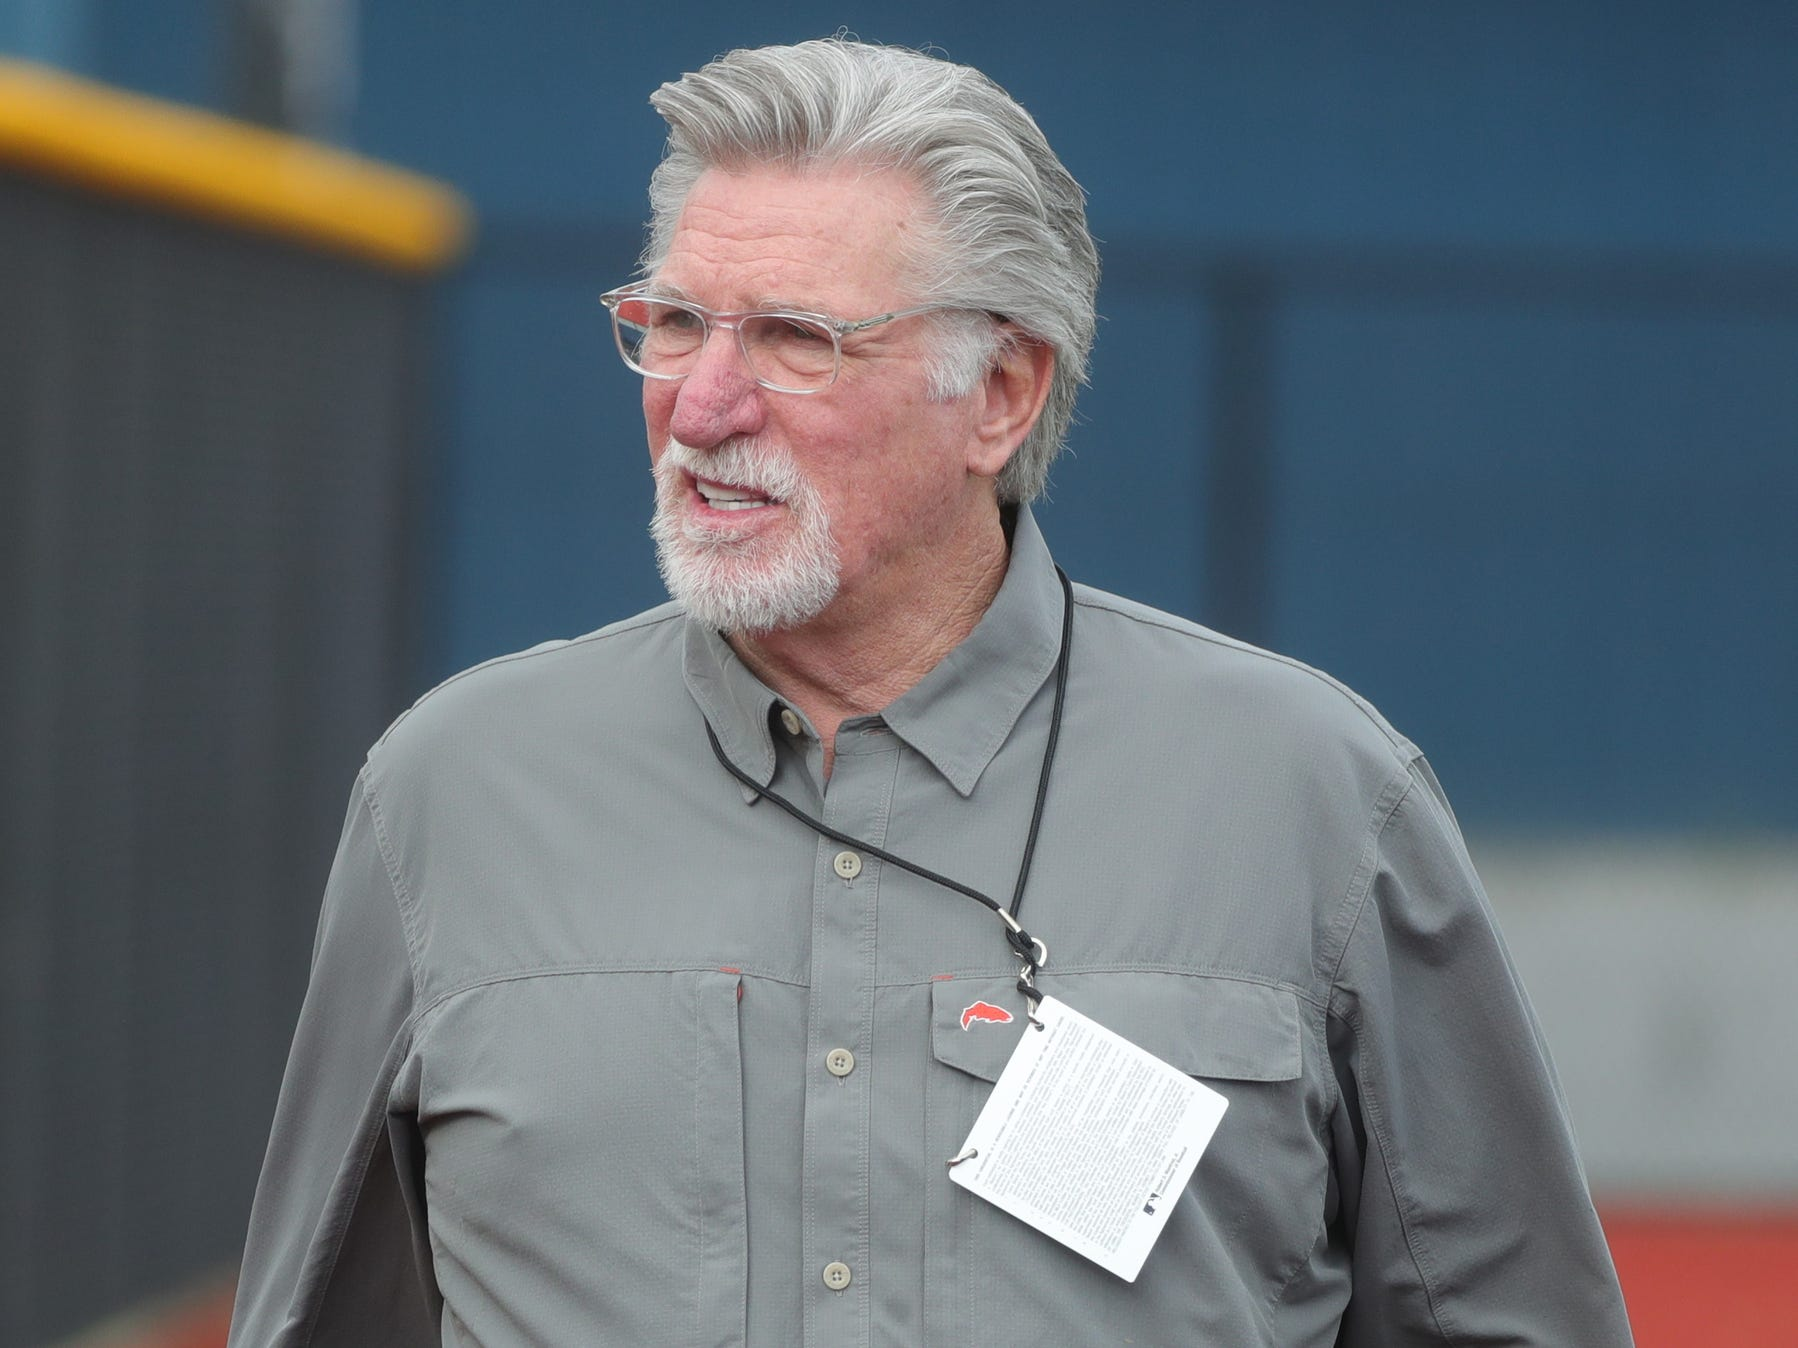 Tigers Hall of Famer Jack Morris walks to the fields during spring training on Wednesday, Feb. 20, 2019, at Joker Marchant Stadium in Lakeland, Fla.